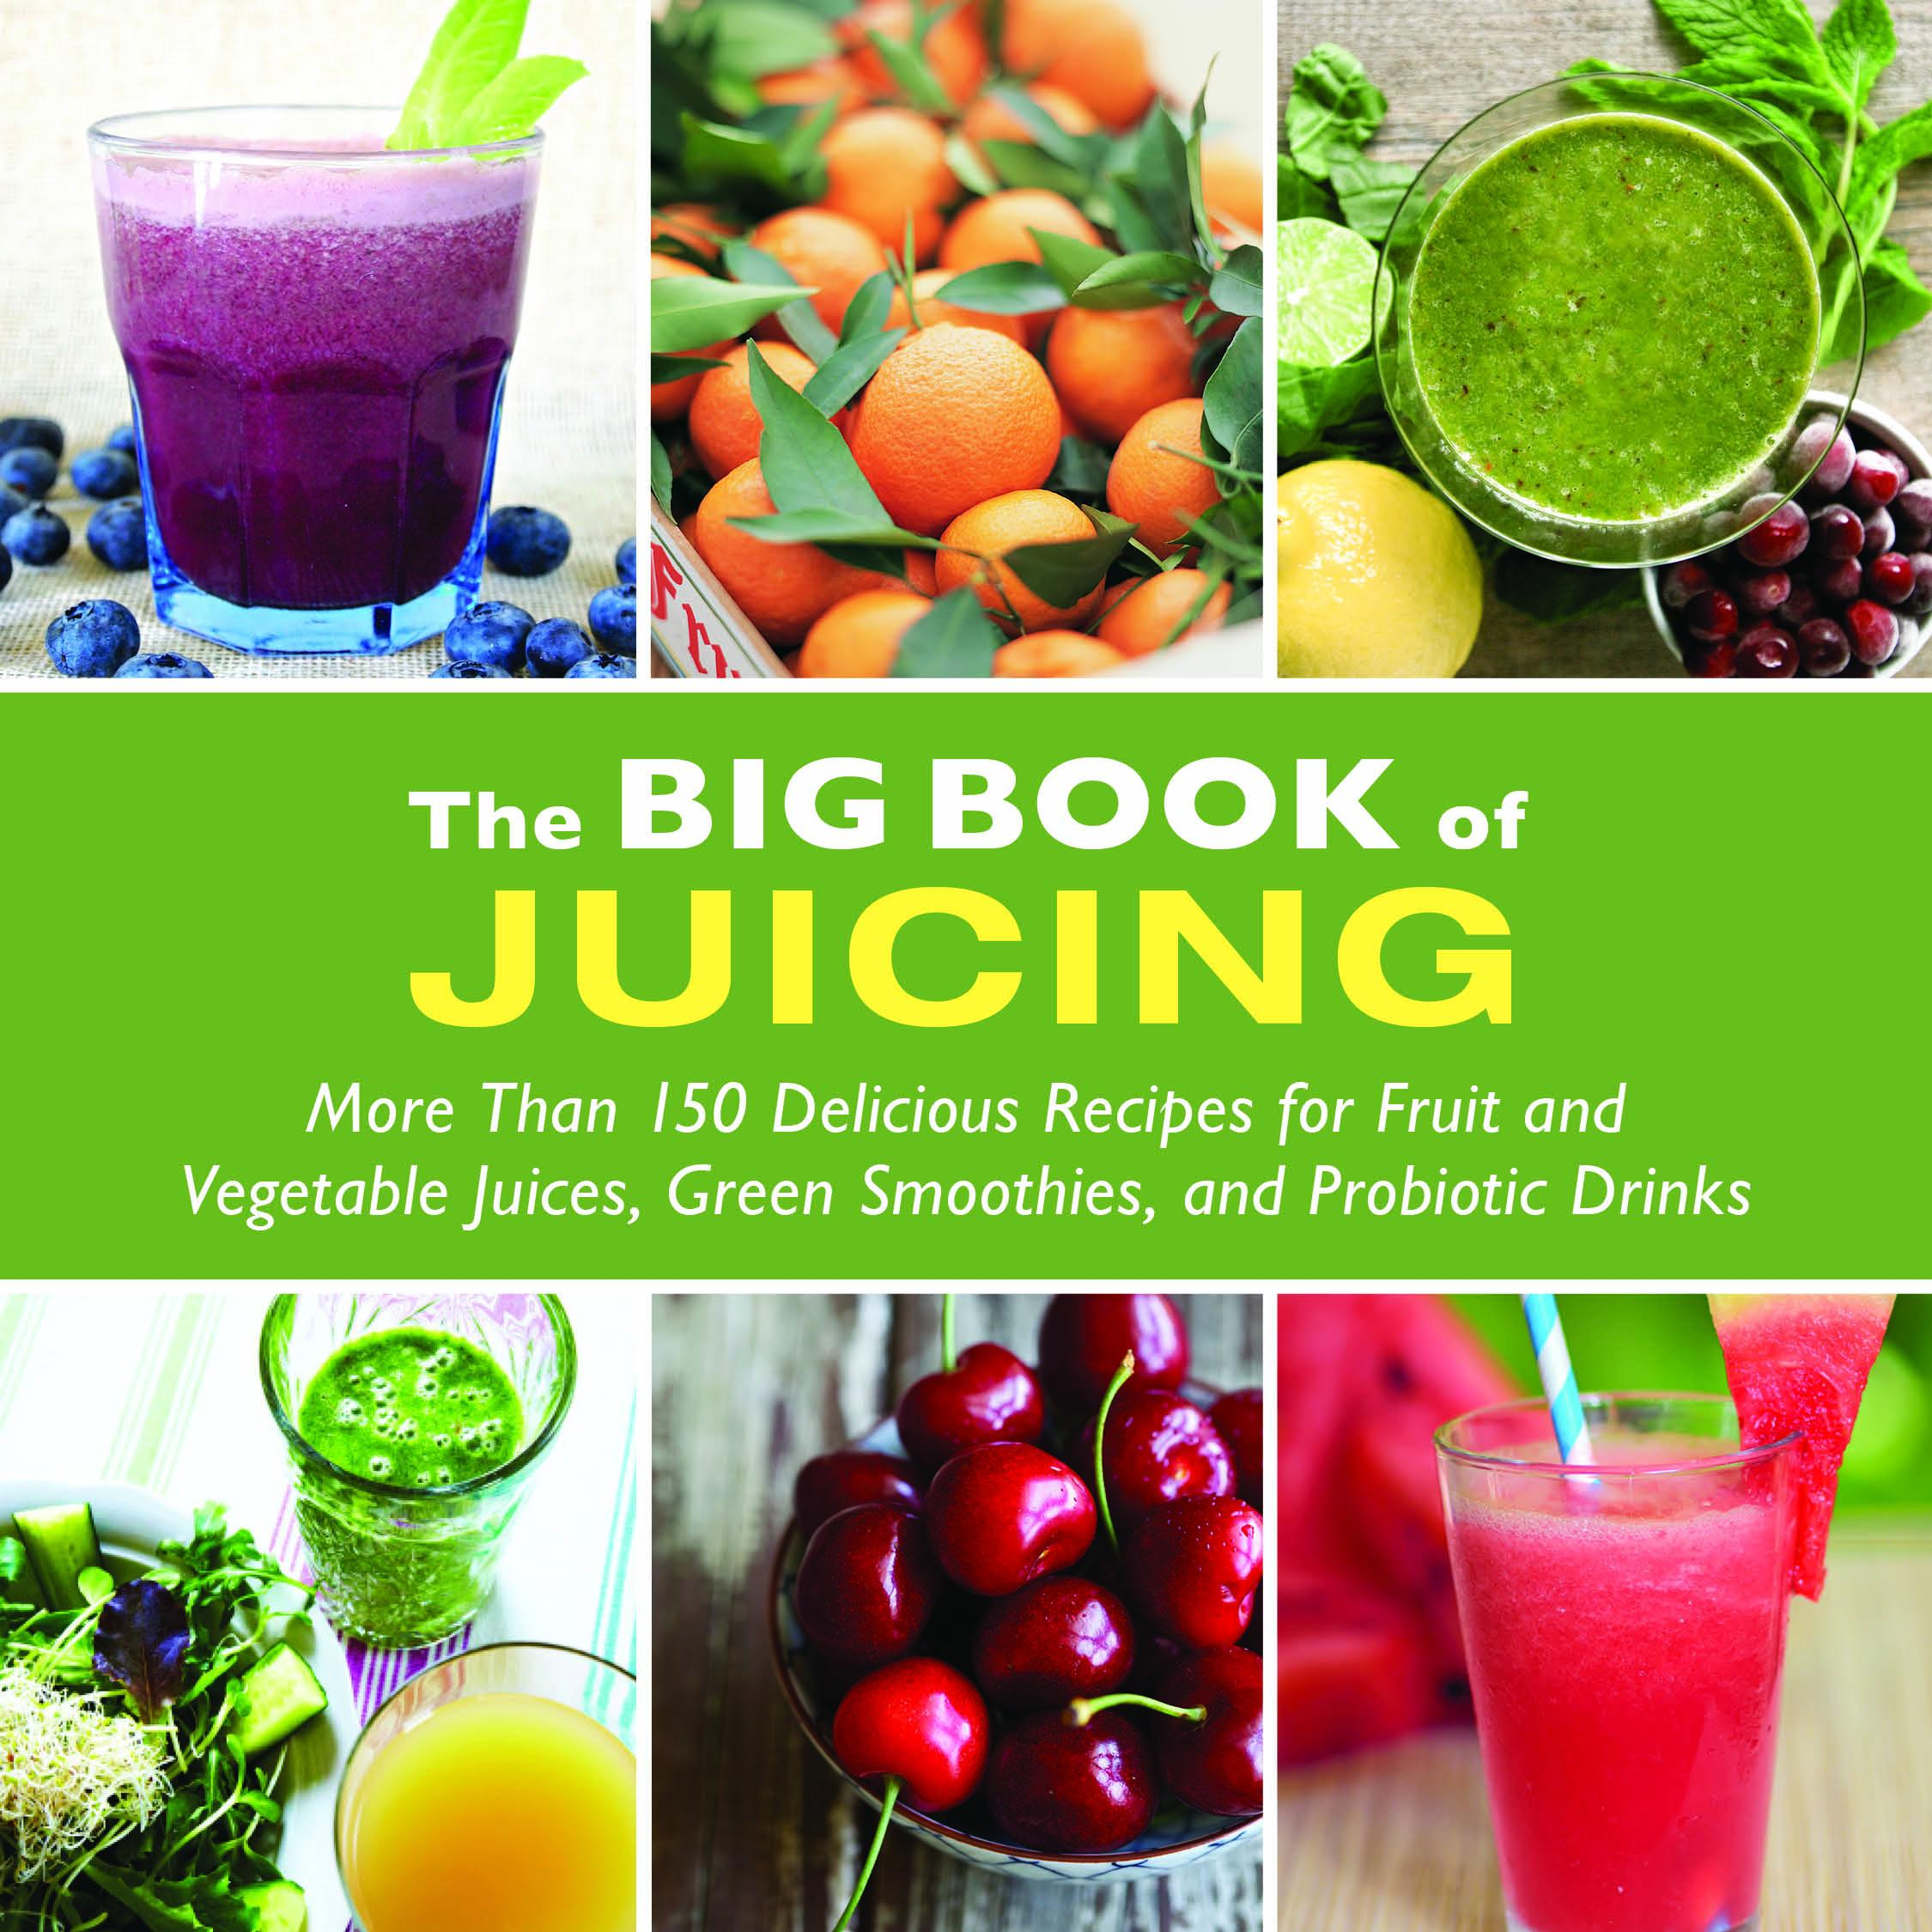 The Big Book of Juicing (Paperback)